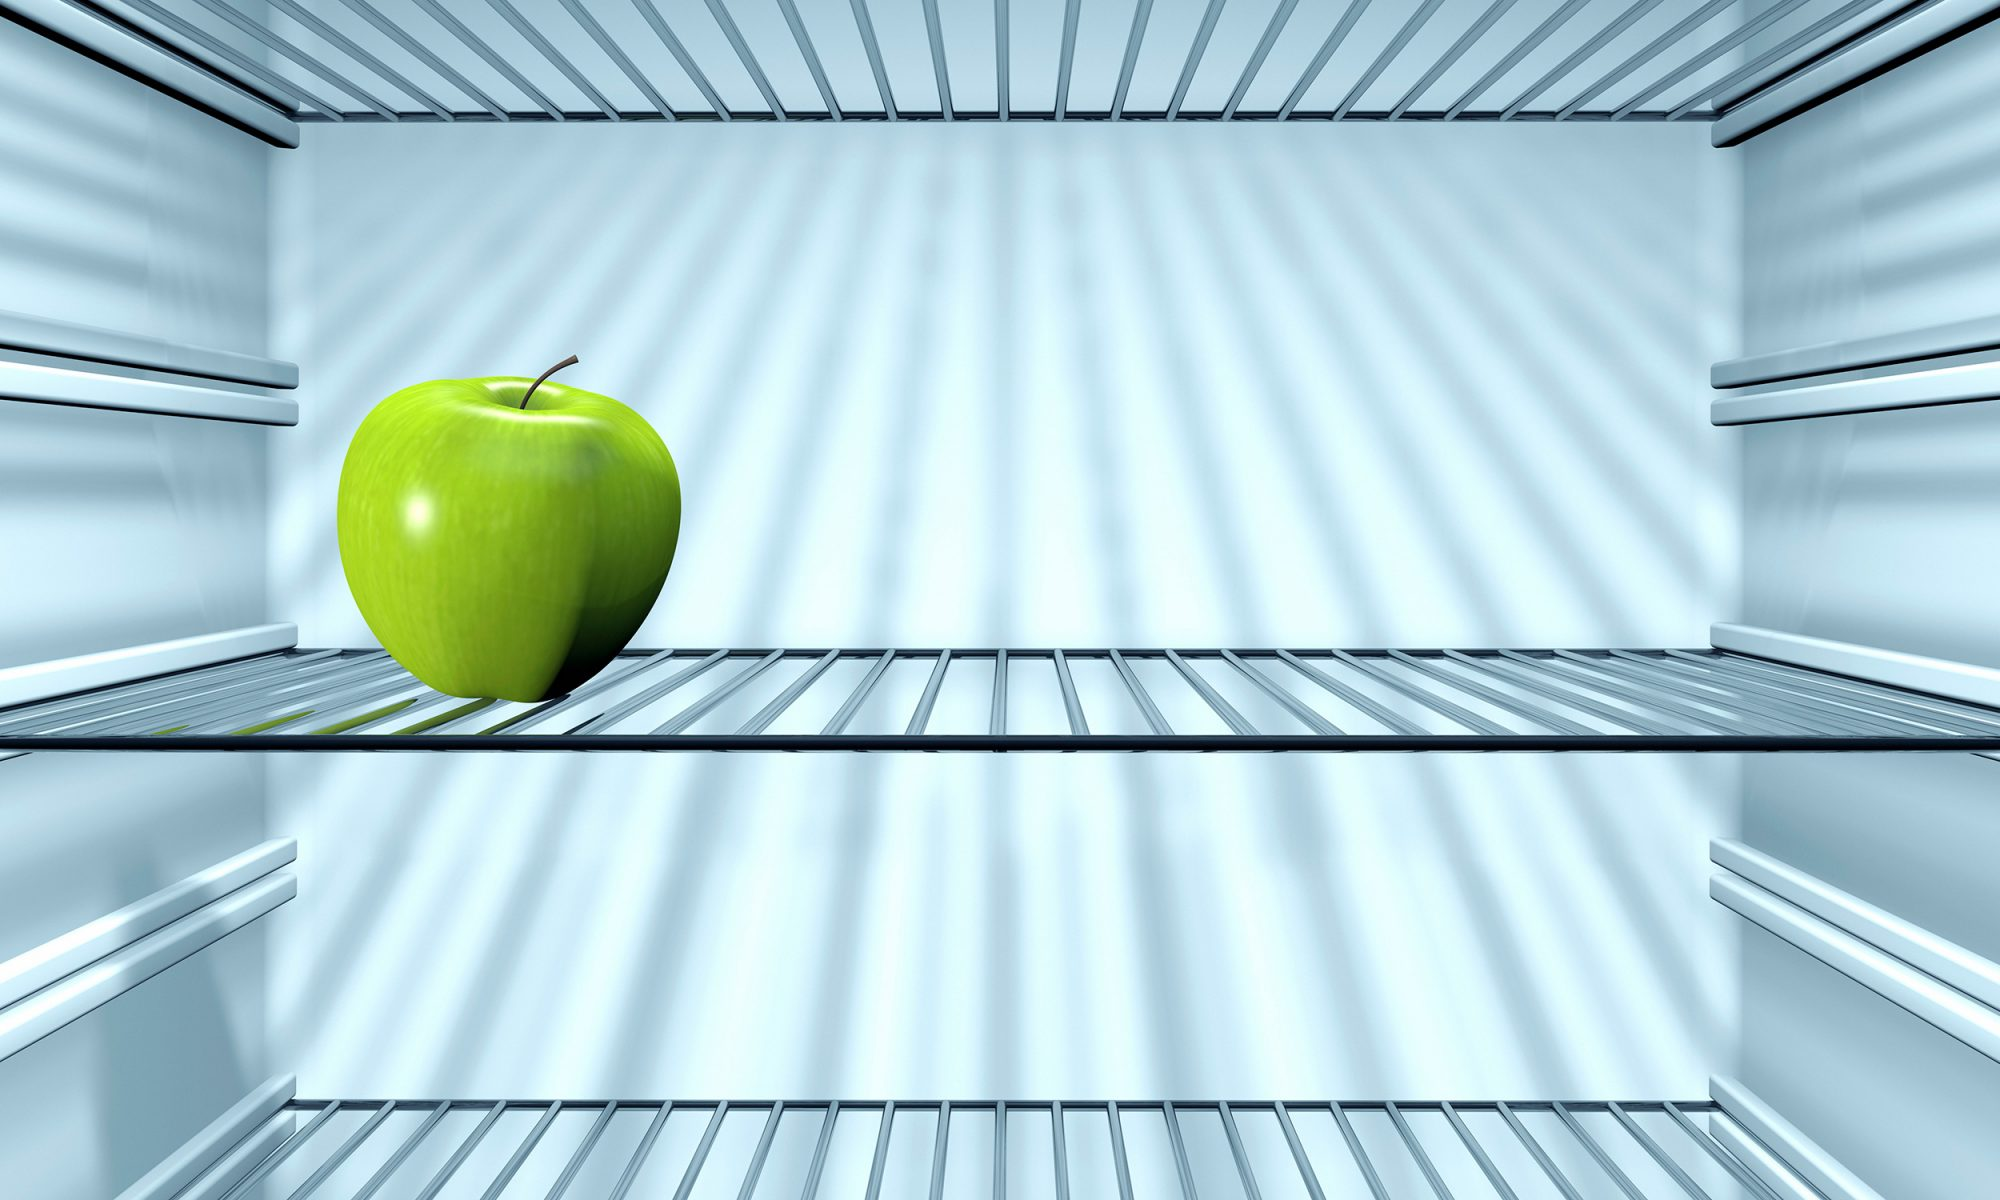 EC: Should You Keep Fruit in the Fridge?